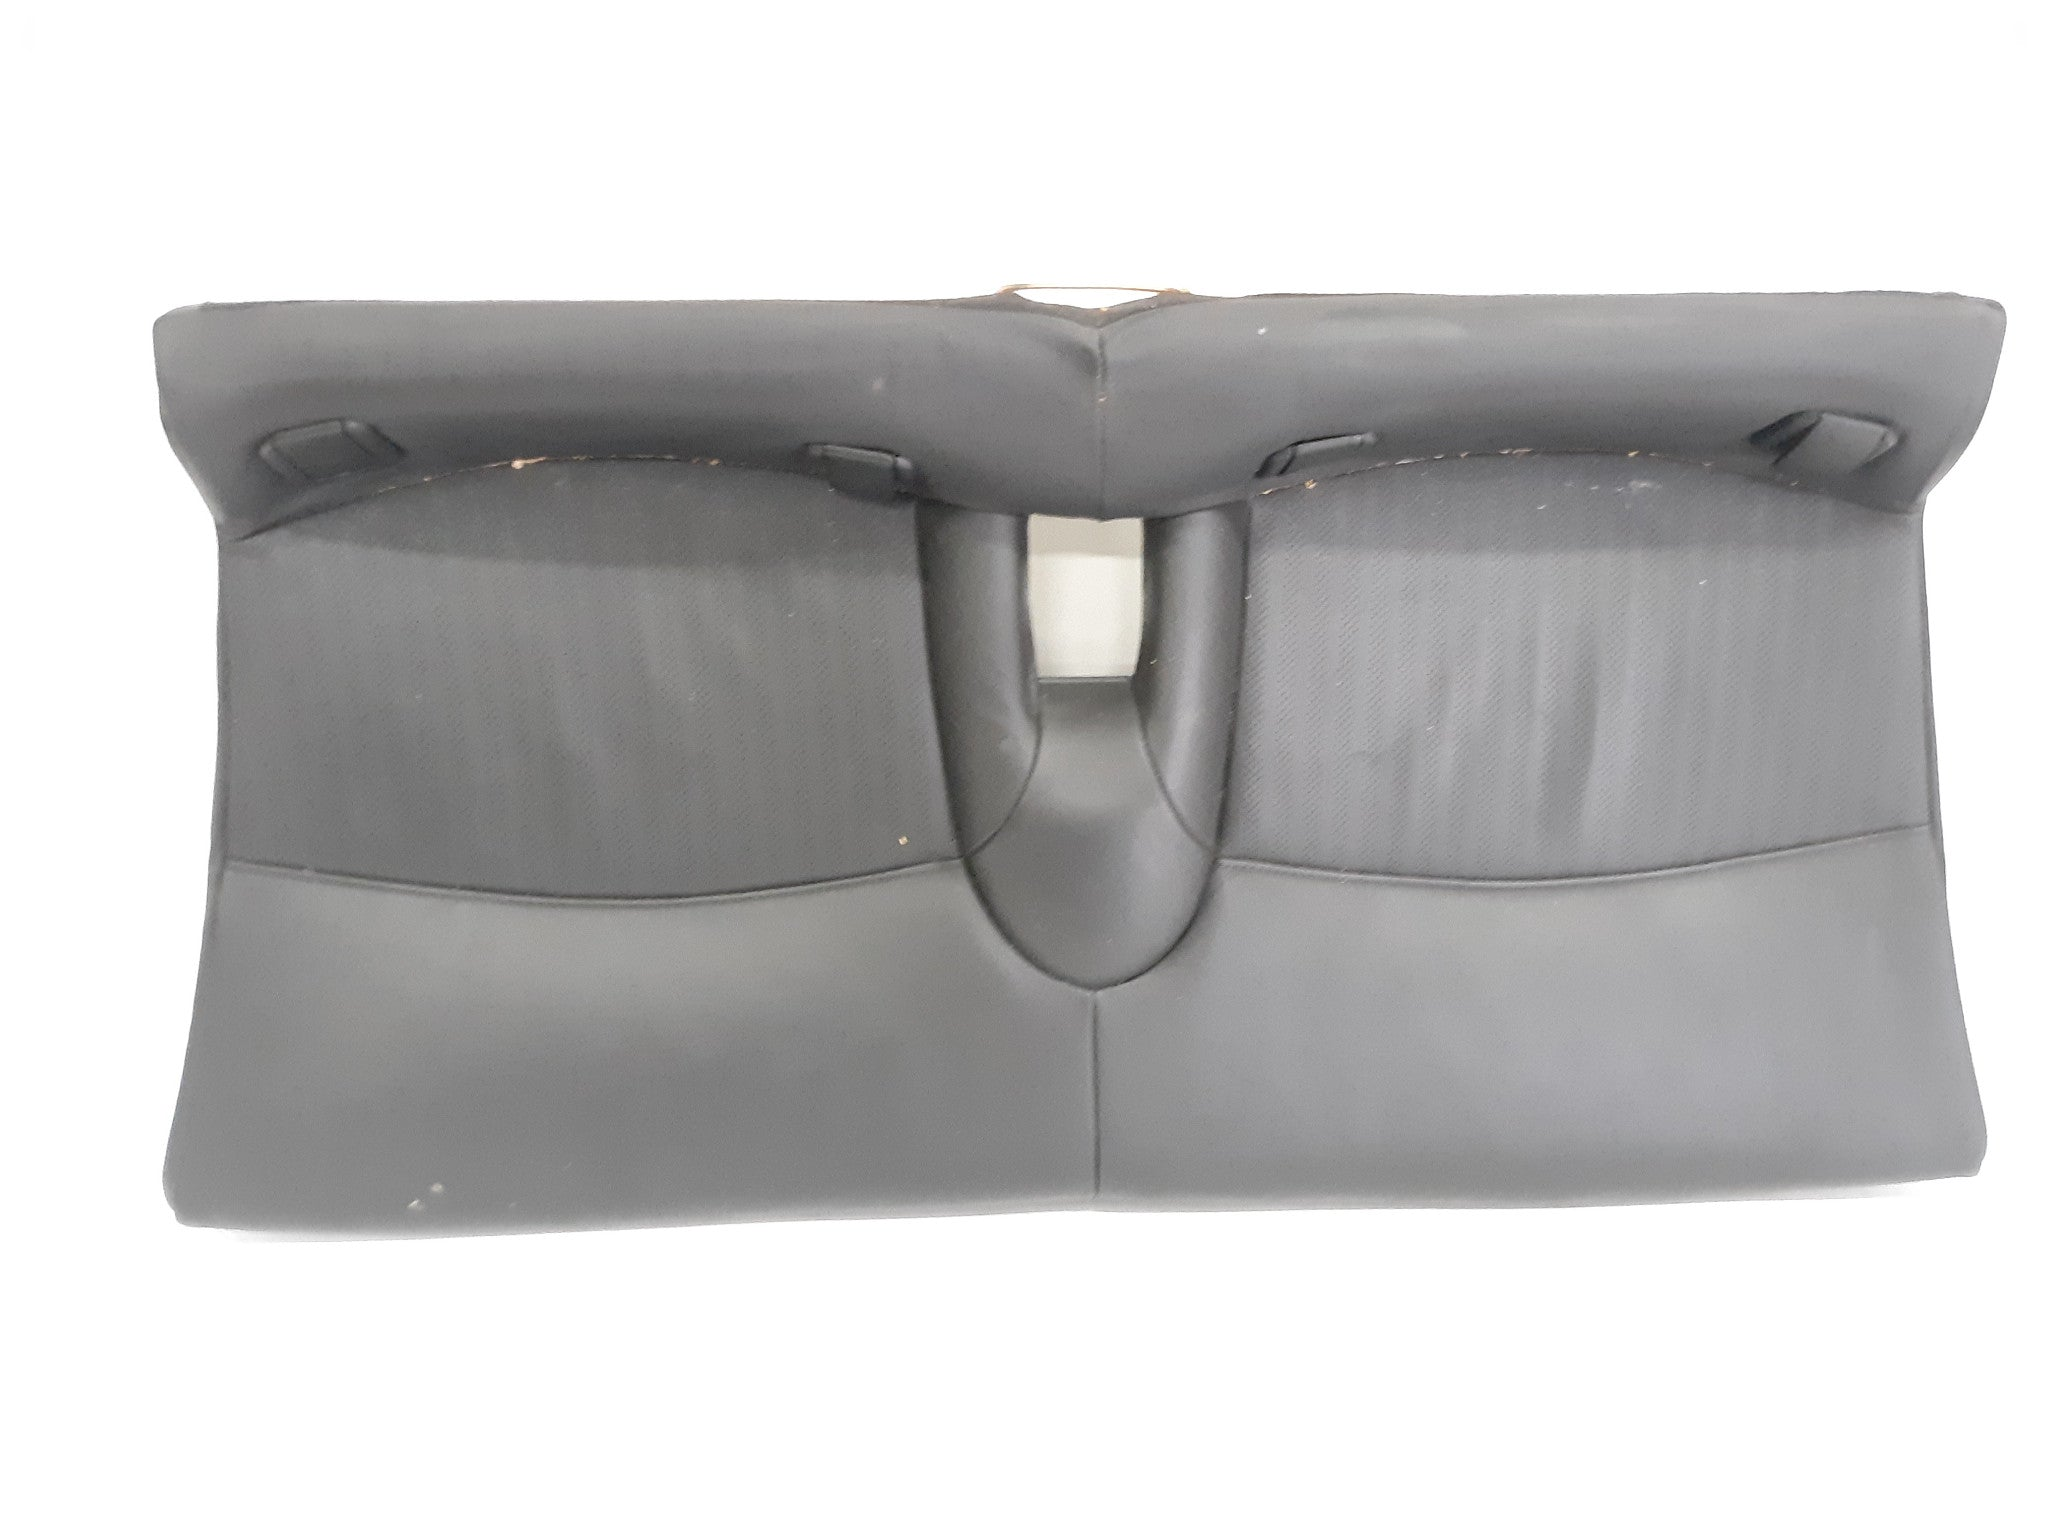 2007 - 2010 MINI COOPER R55 R56 REAR BACK SEAT BOTTOM LOWER CUSHION 8332810 OEM